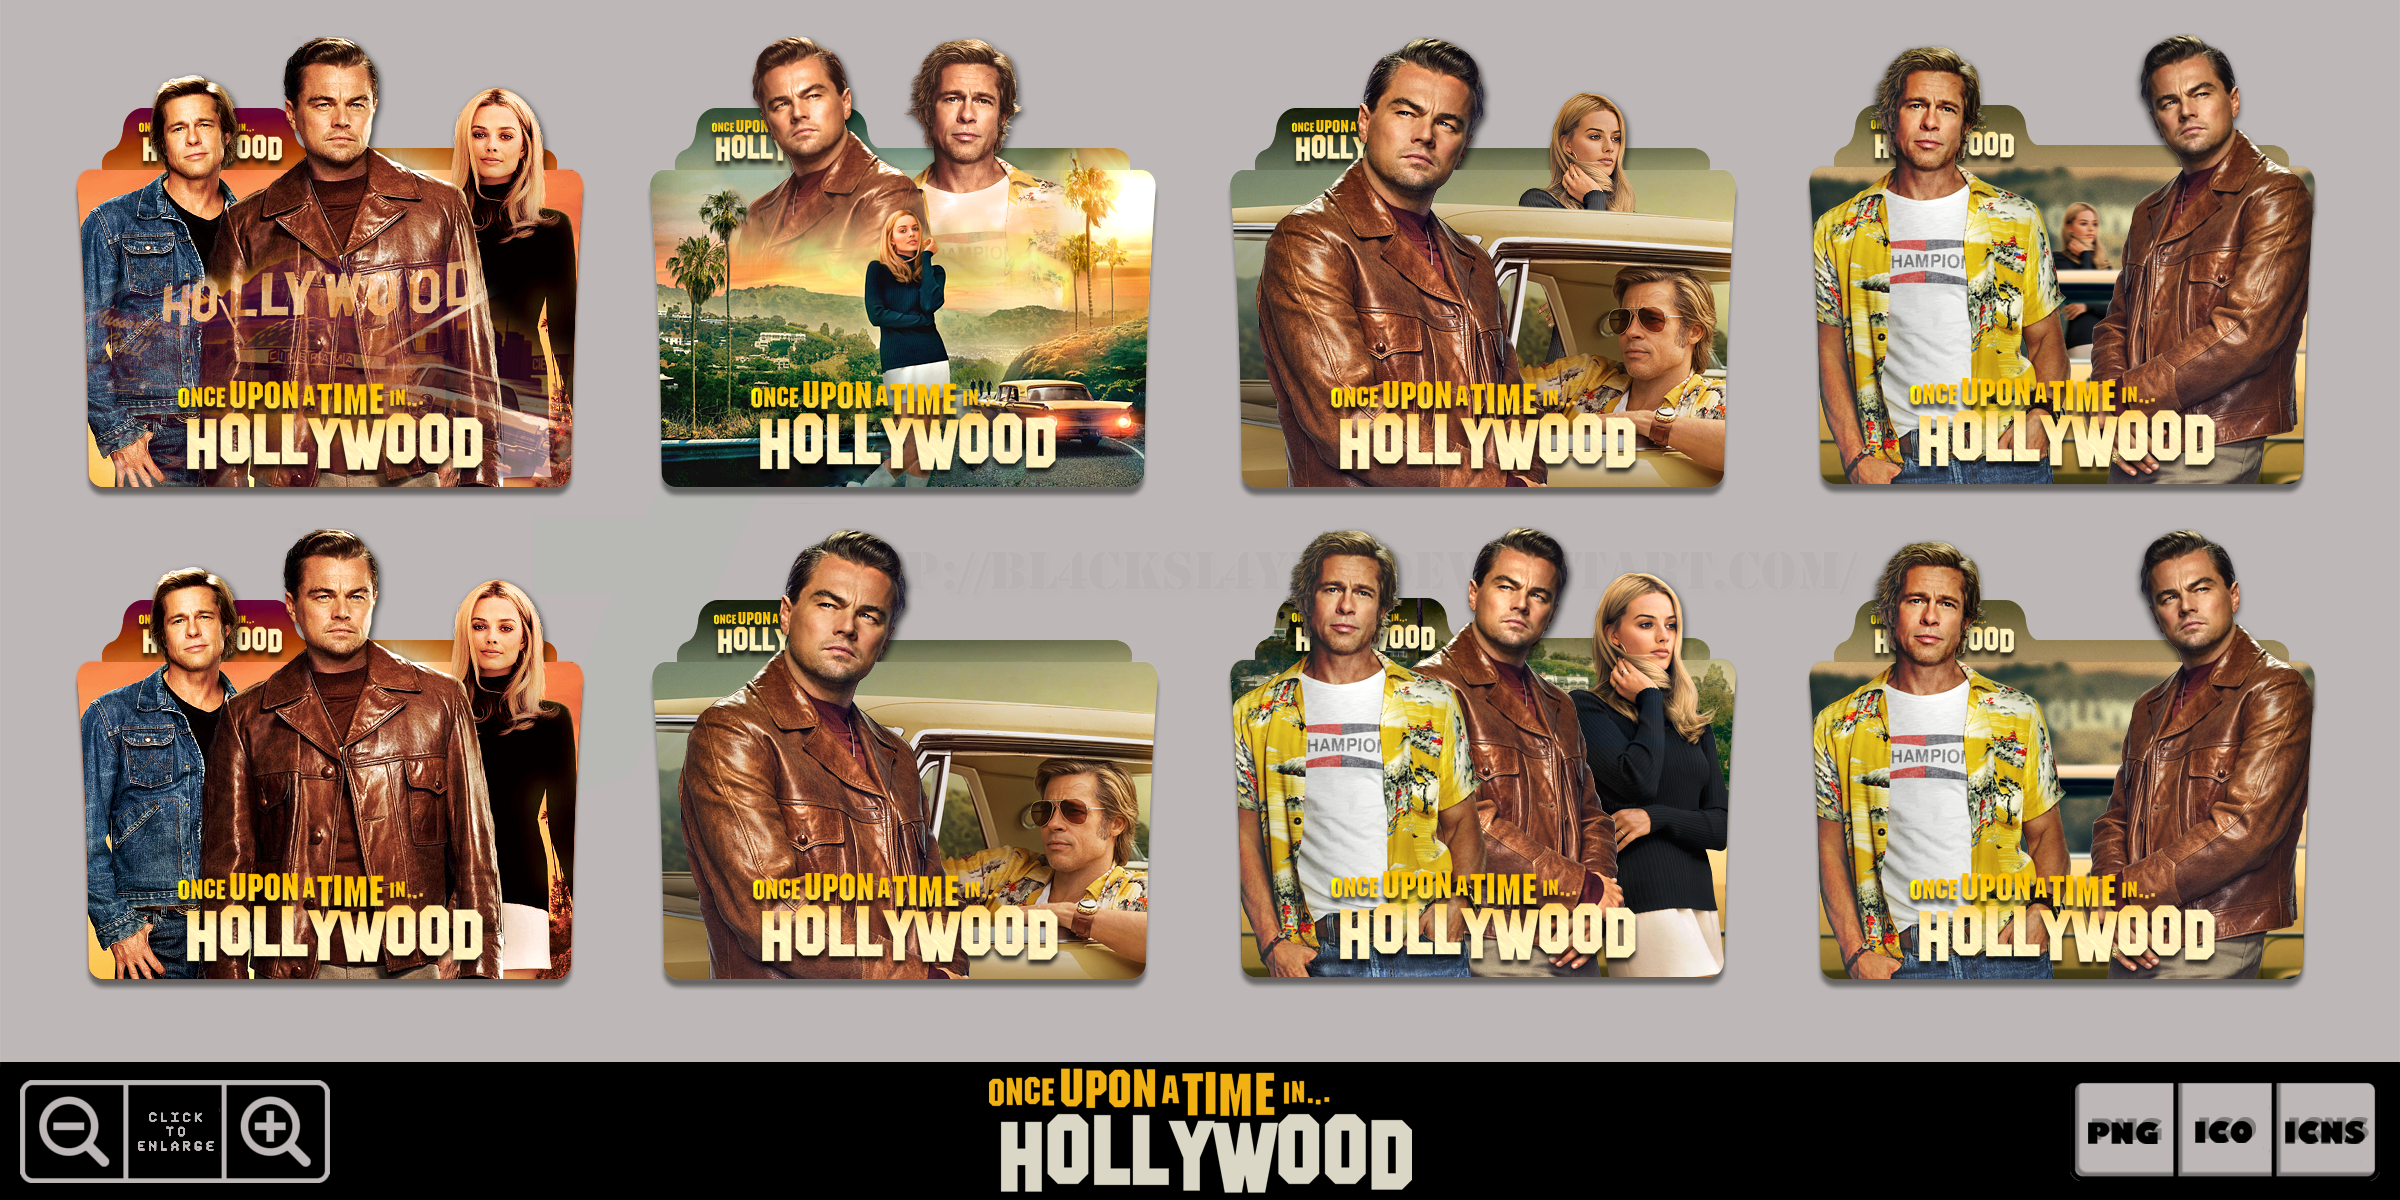 Once Upon A Time In Hollywood 2019 Icon Pack By Bl4cksl4yer On Deviantart